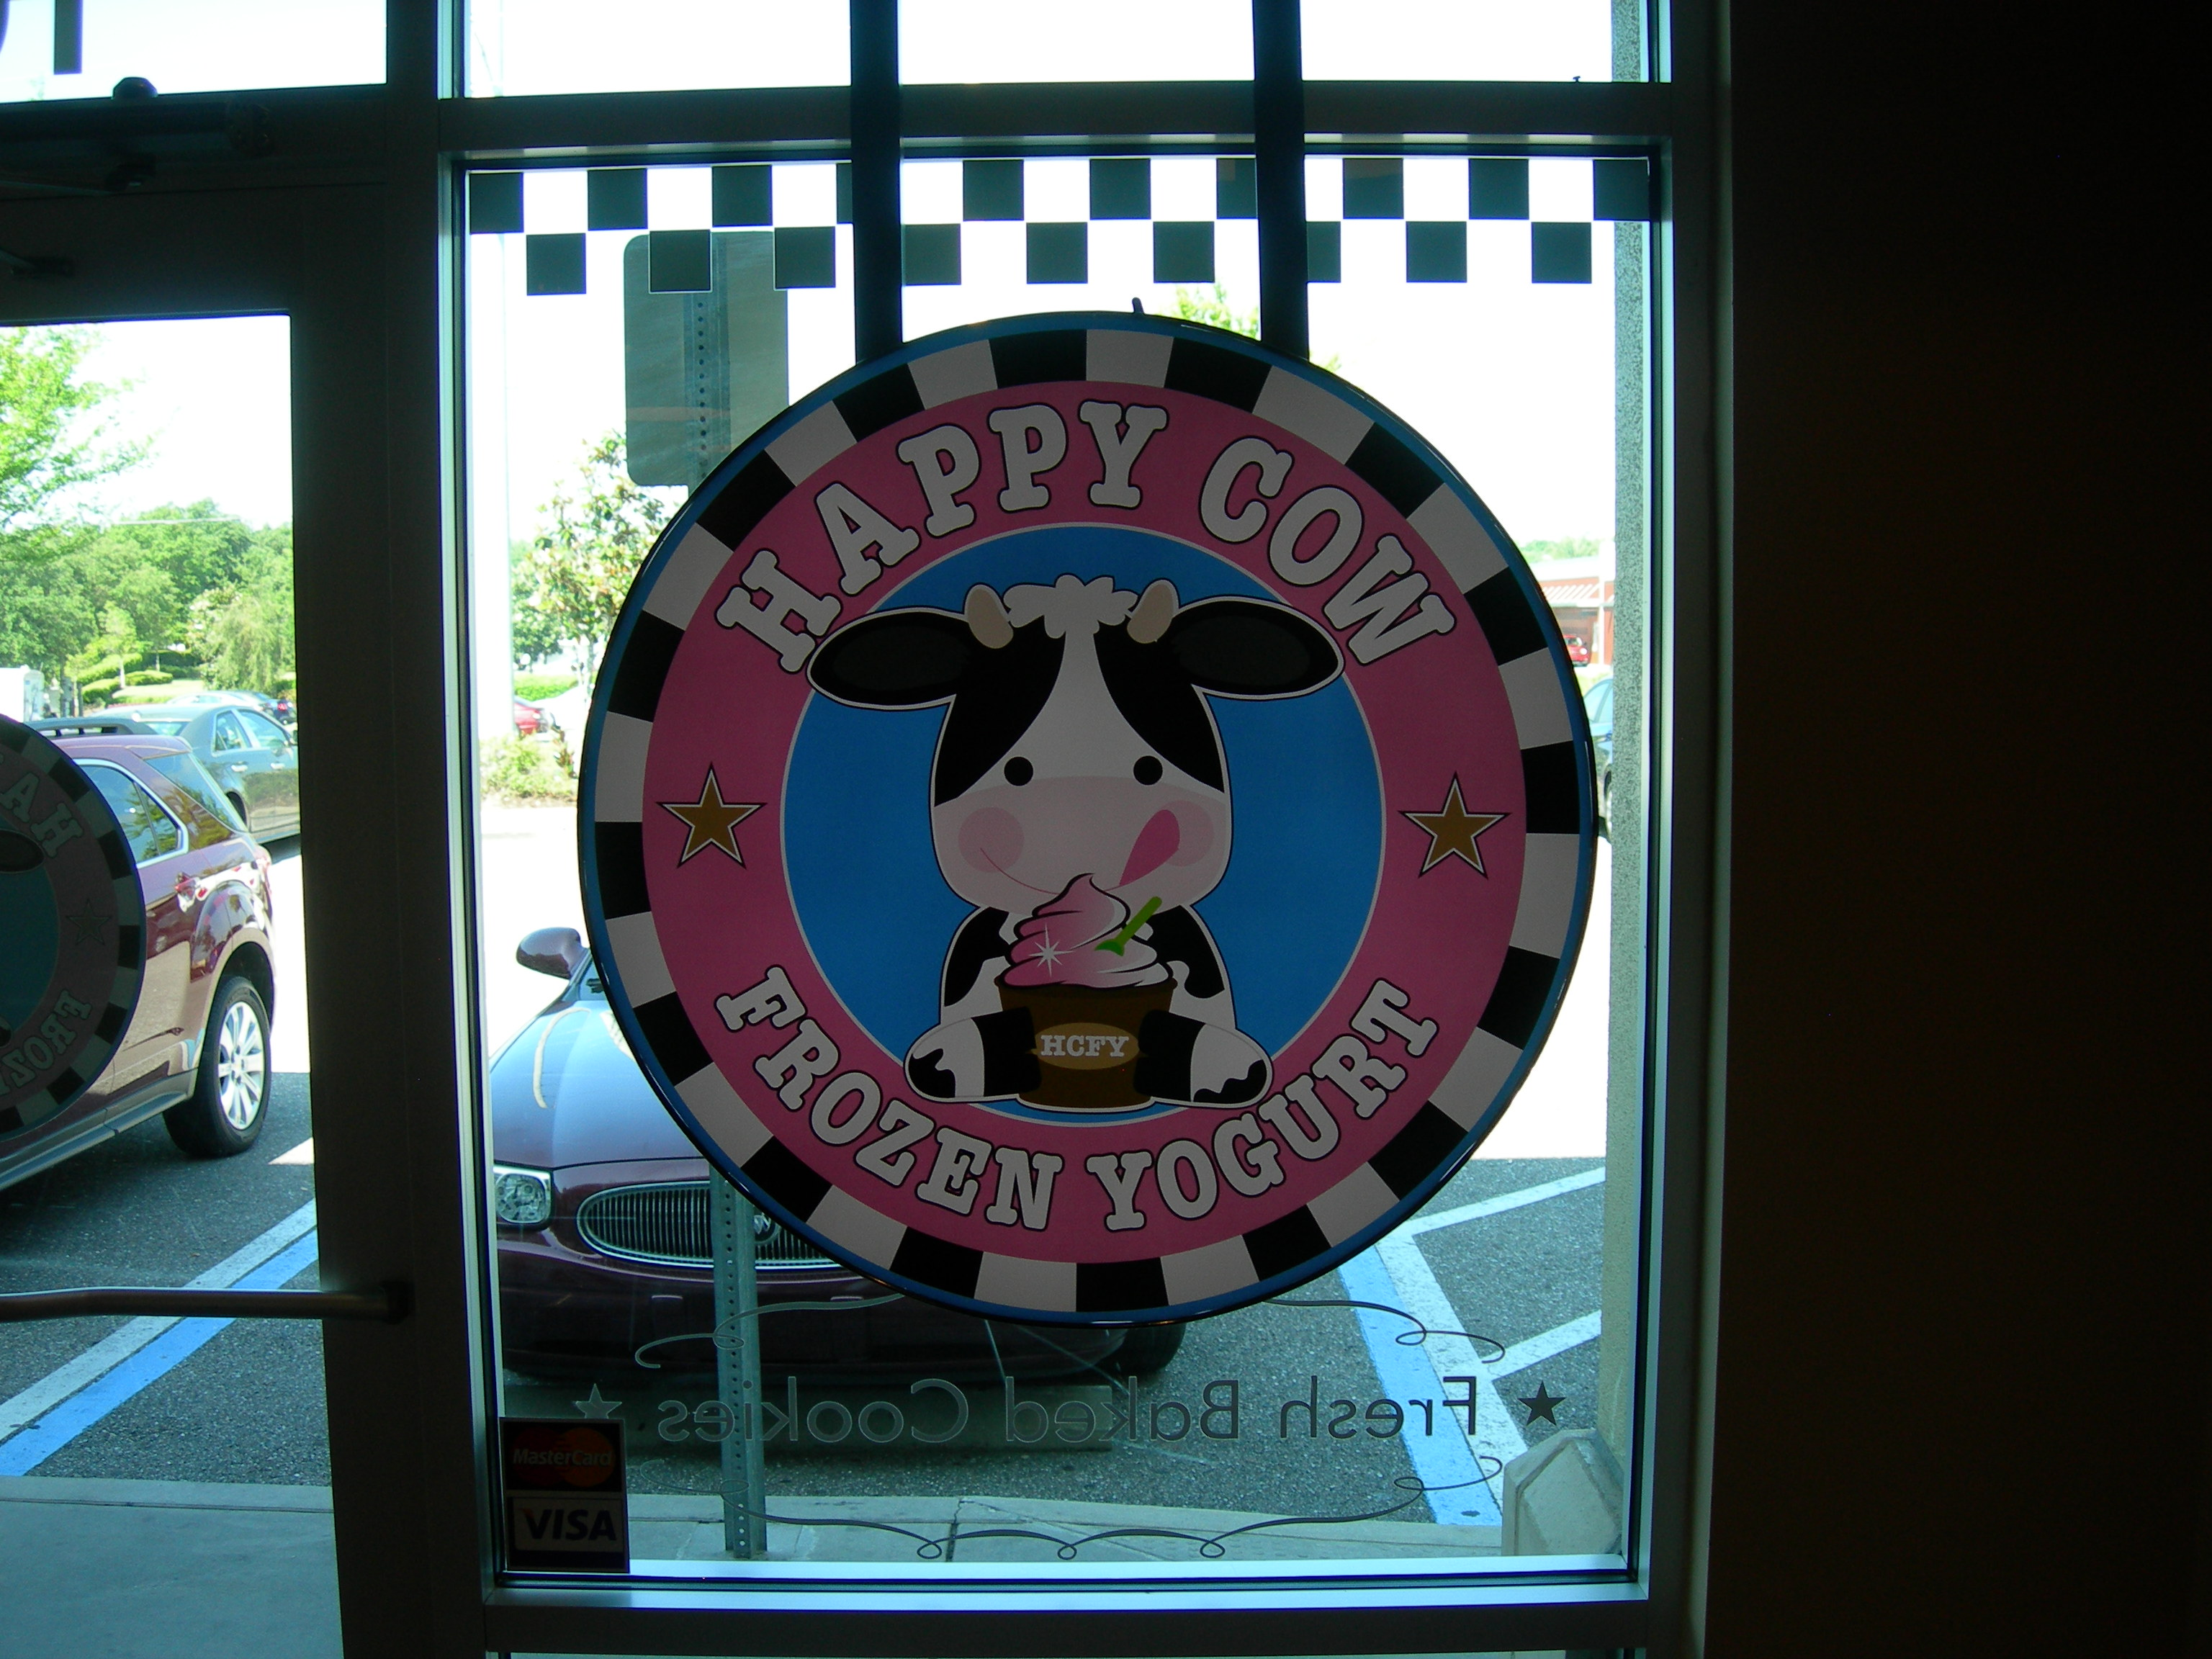 Happy Cow Yogurt Shop